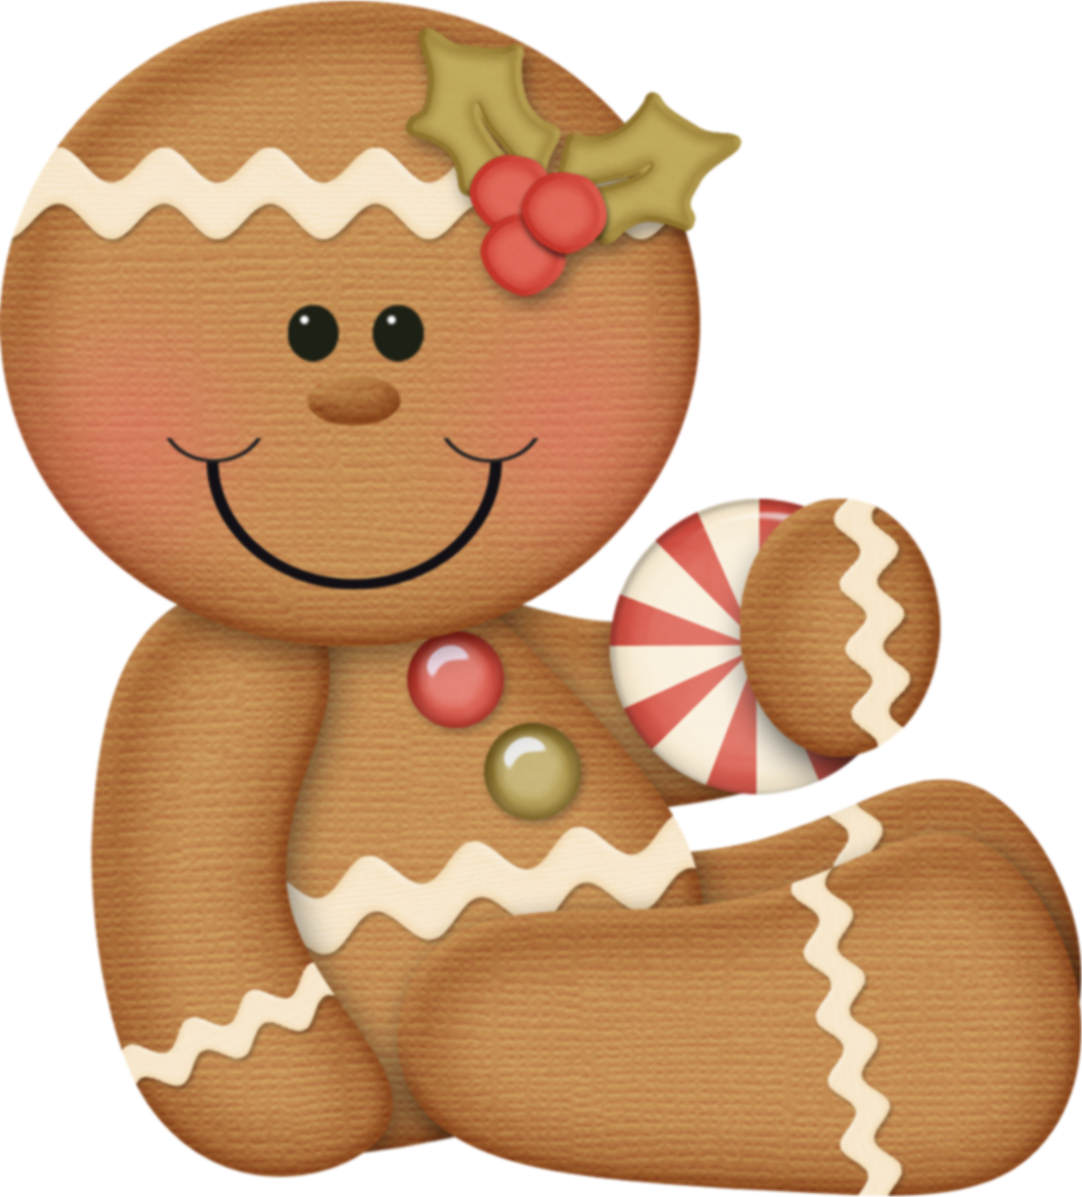 Gingerbread clipart face #7